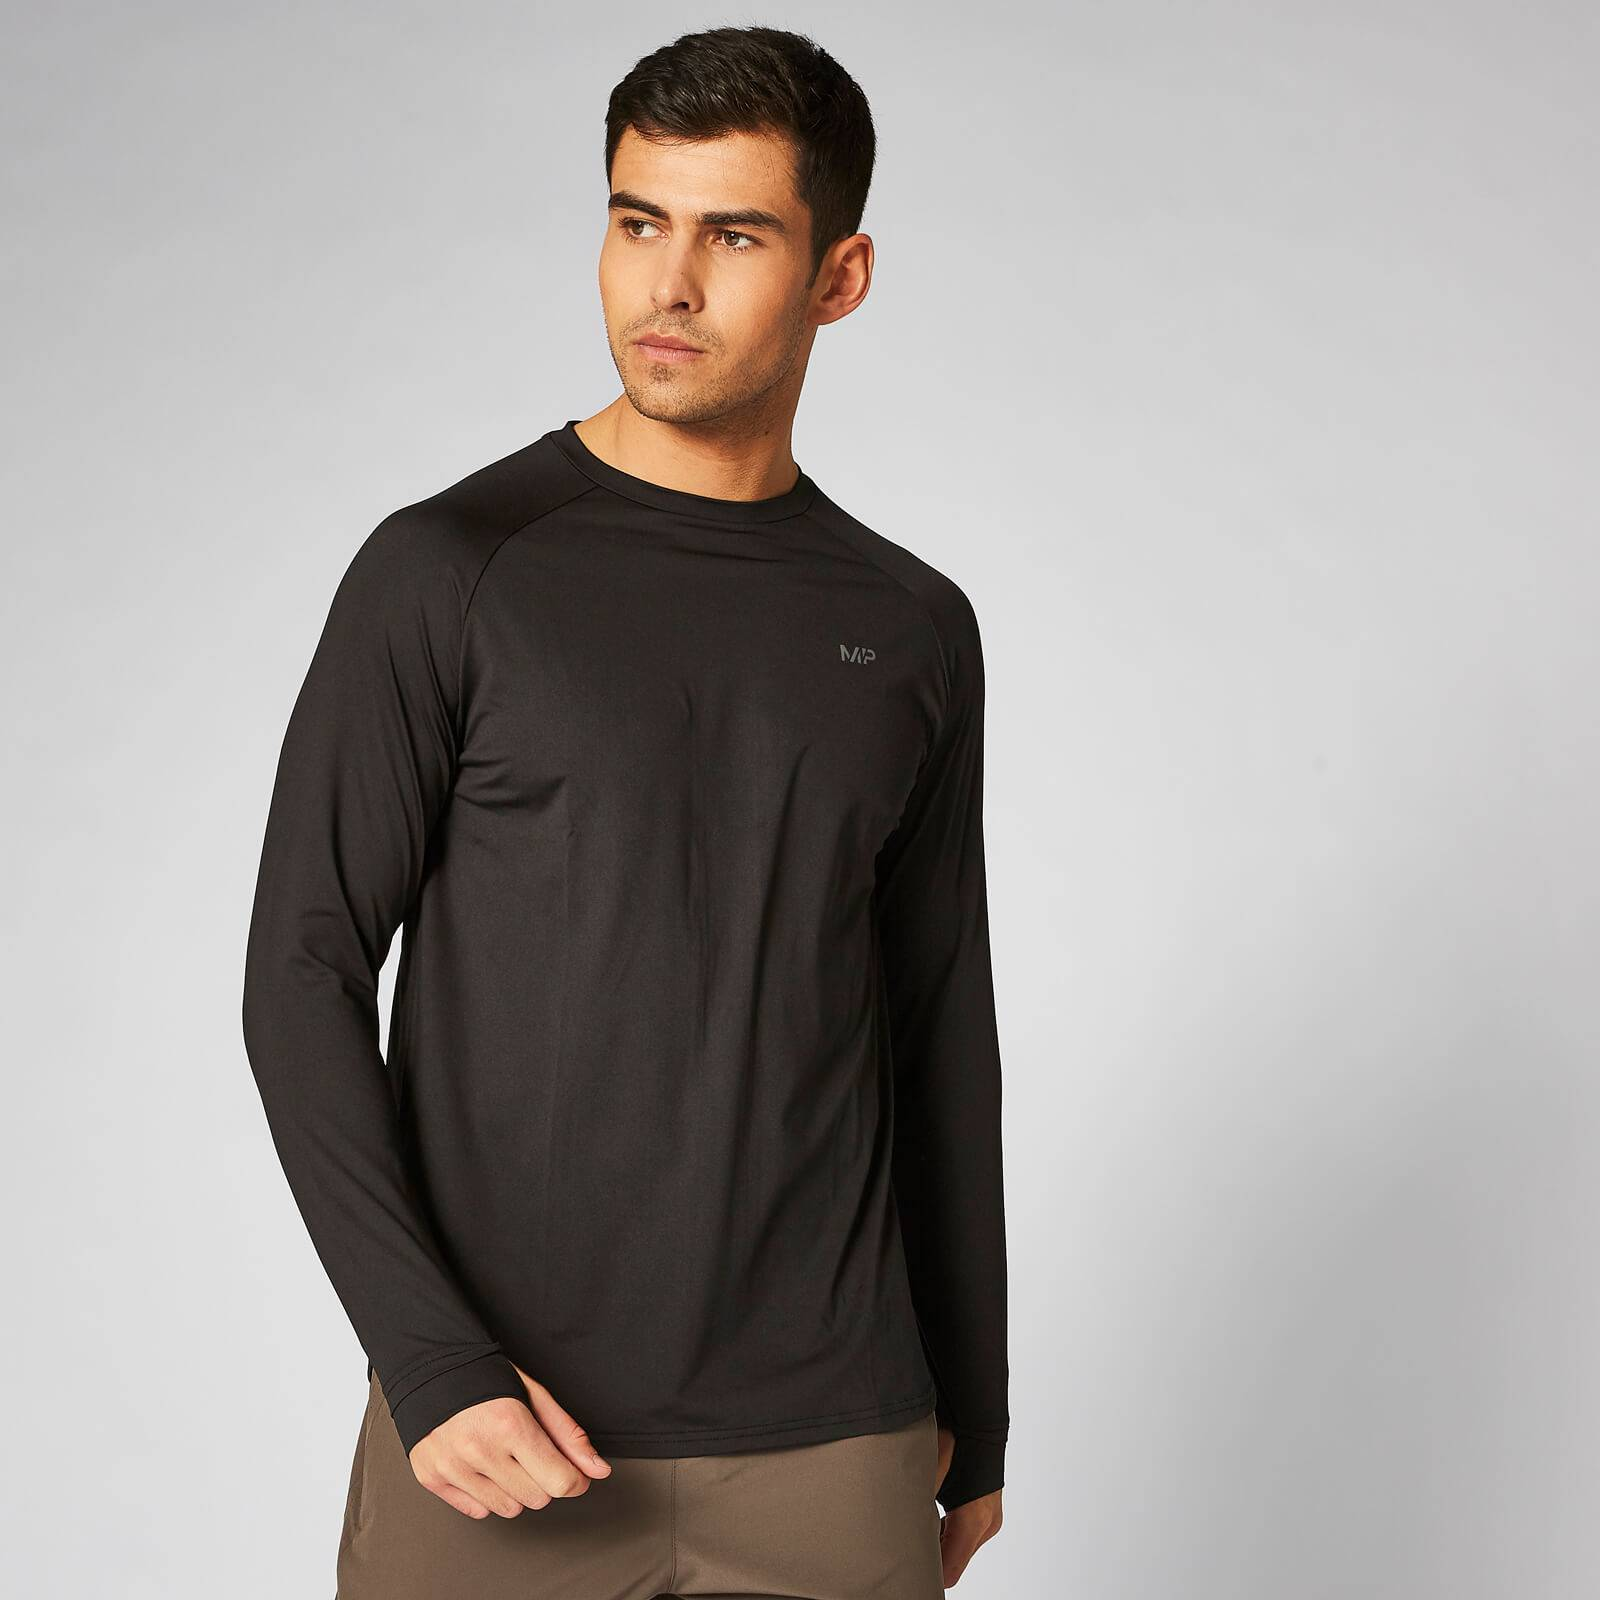 Myprotein Dry-Tech Infinity Long-Sleeve T-Shirt – Black - L